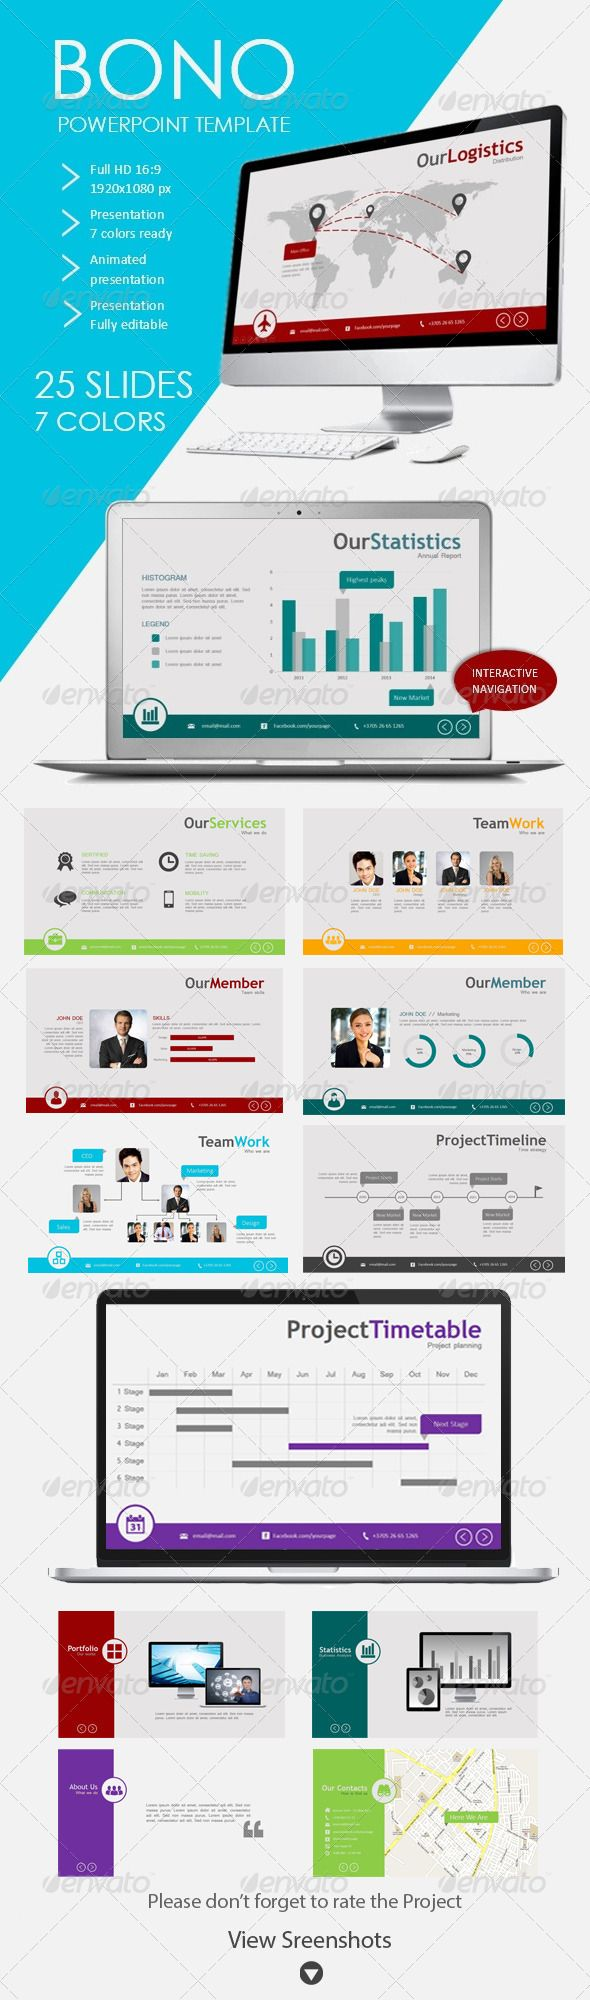 101 best presentation images on pinterest graph design page bono powerpoint template for business toneelgroepblik Images